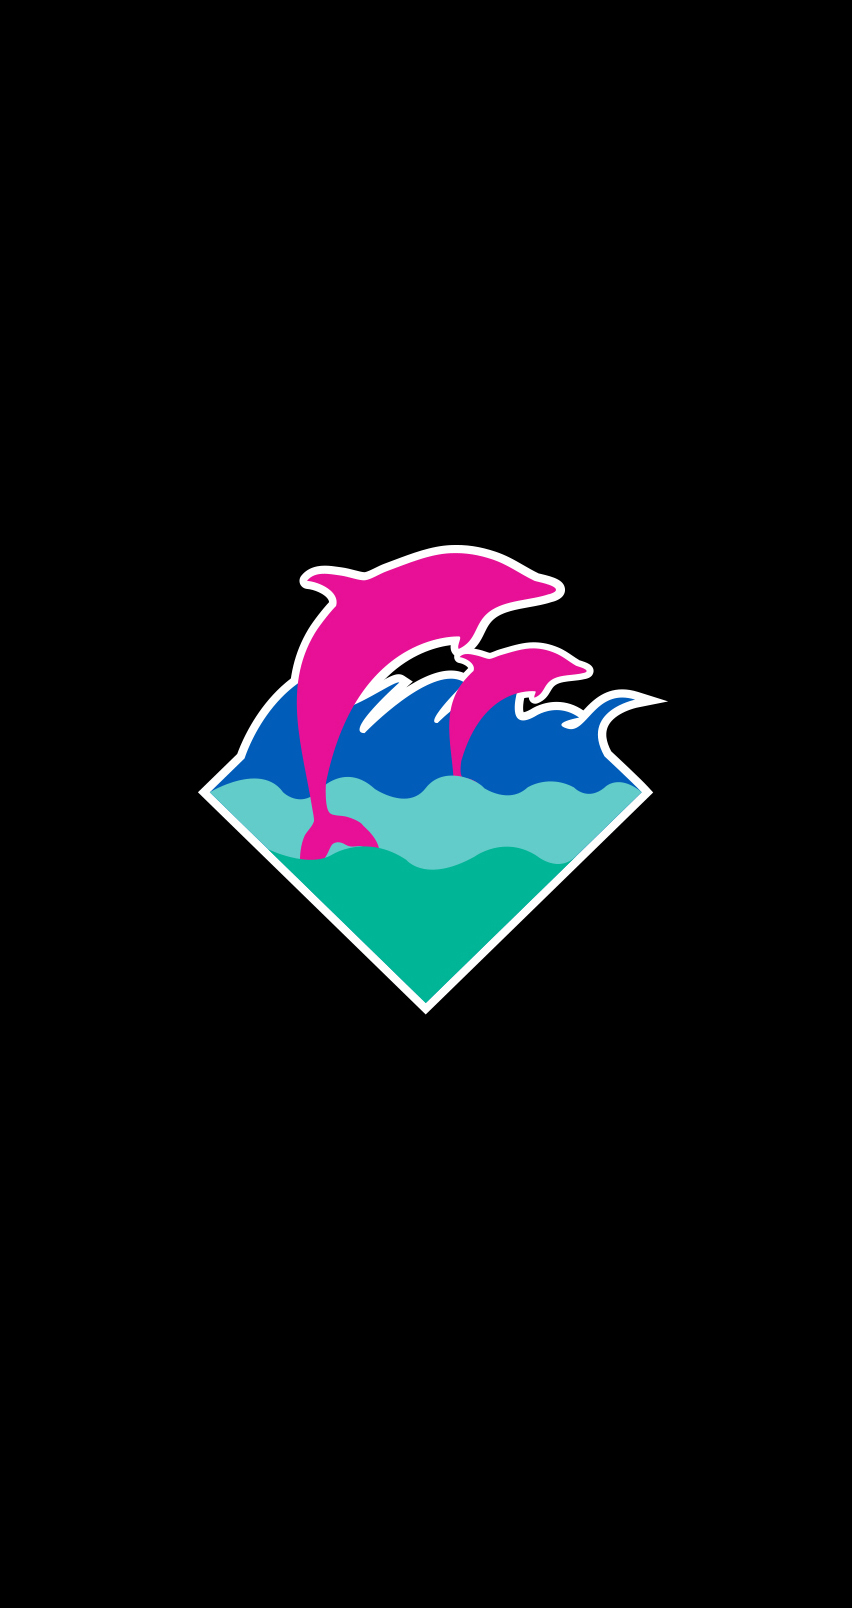 Download pink dolphin logo wallpaper gallery - Pink dolphin logo wallpaper ...